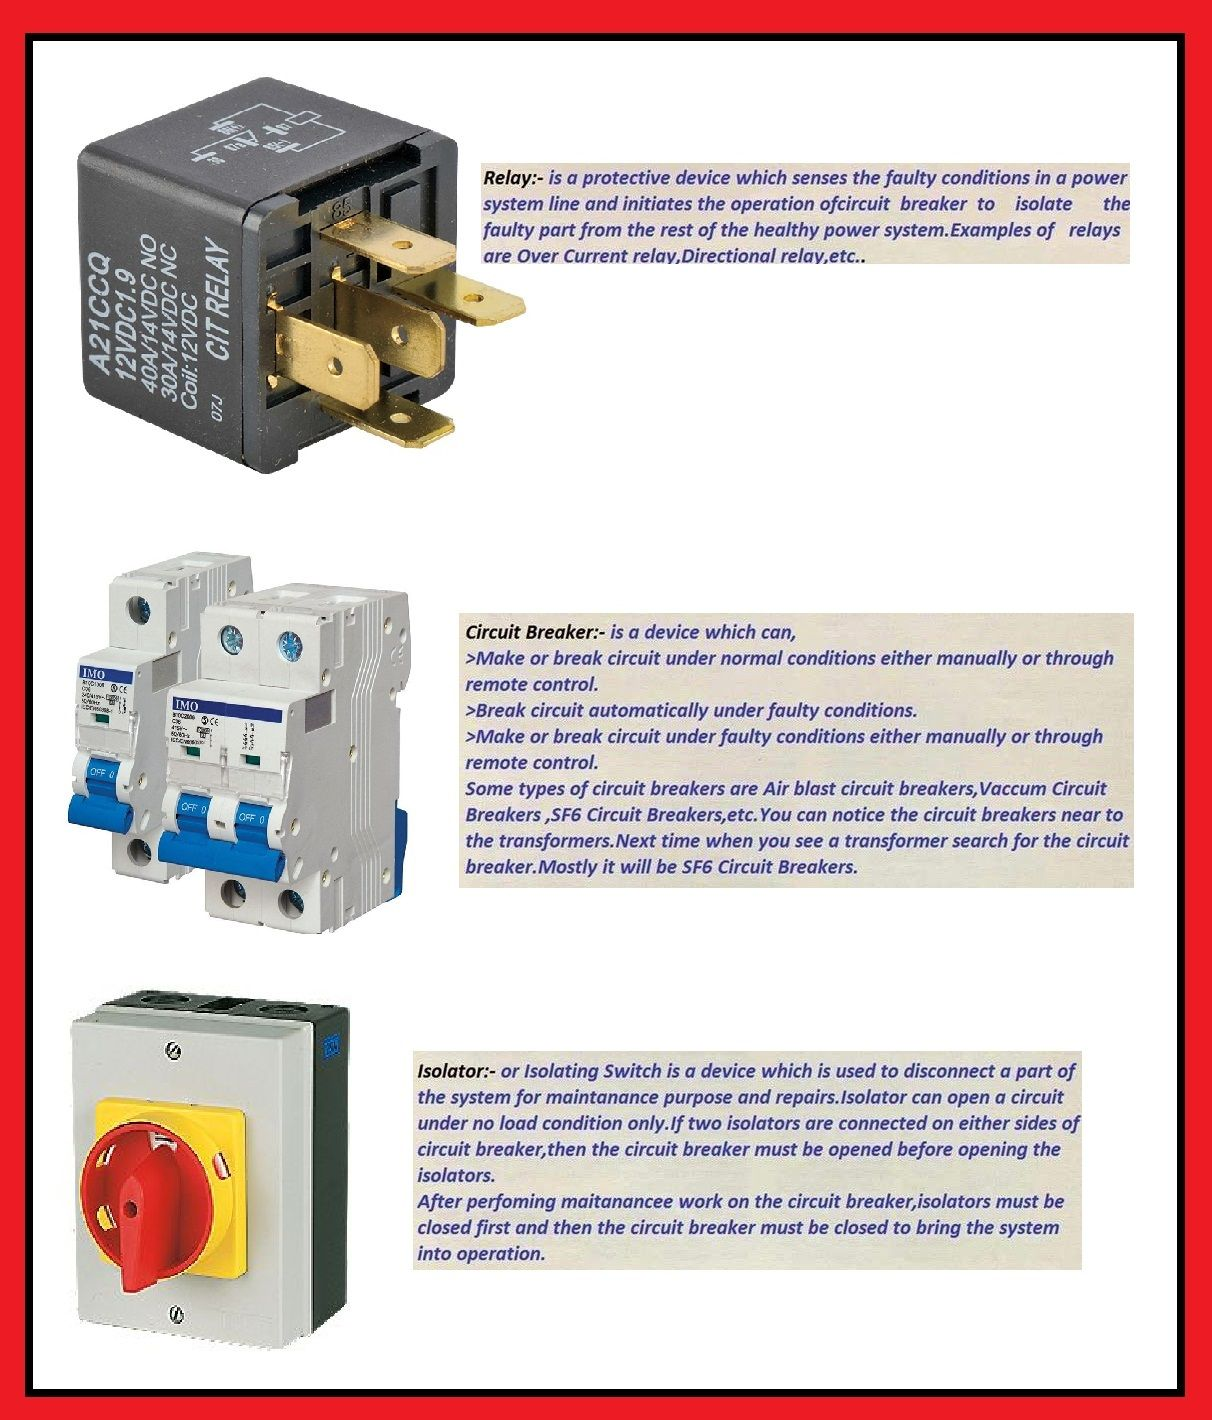 what is the difference between relay circuit breaker and isolator elec eng world [ 1212 x 1420 Pixel ]